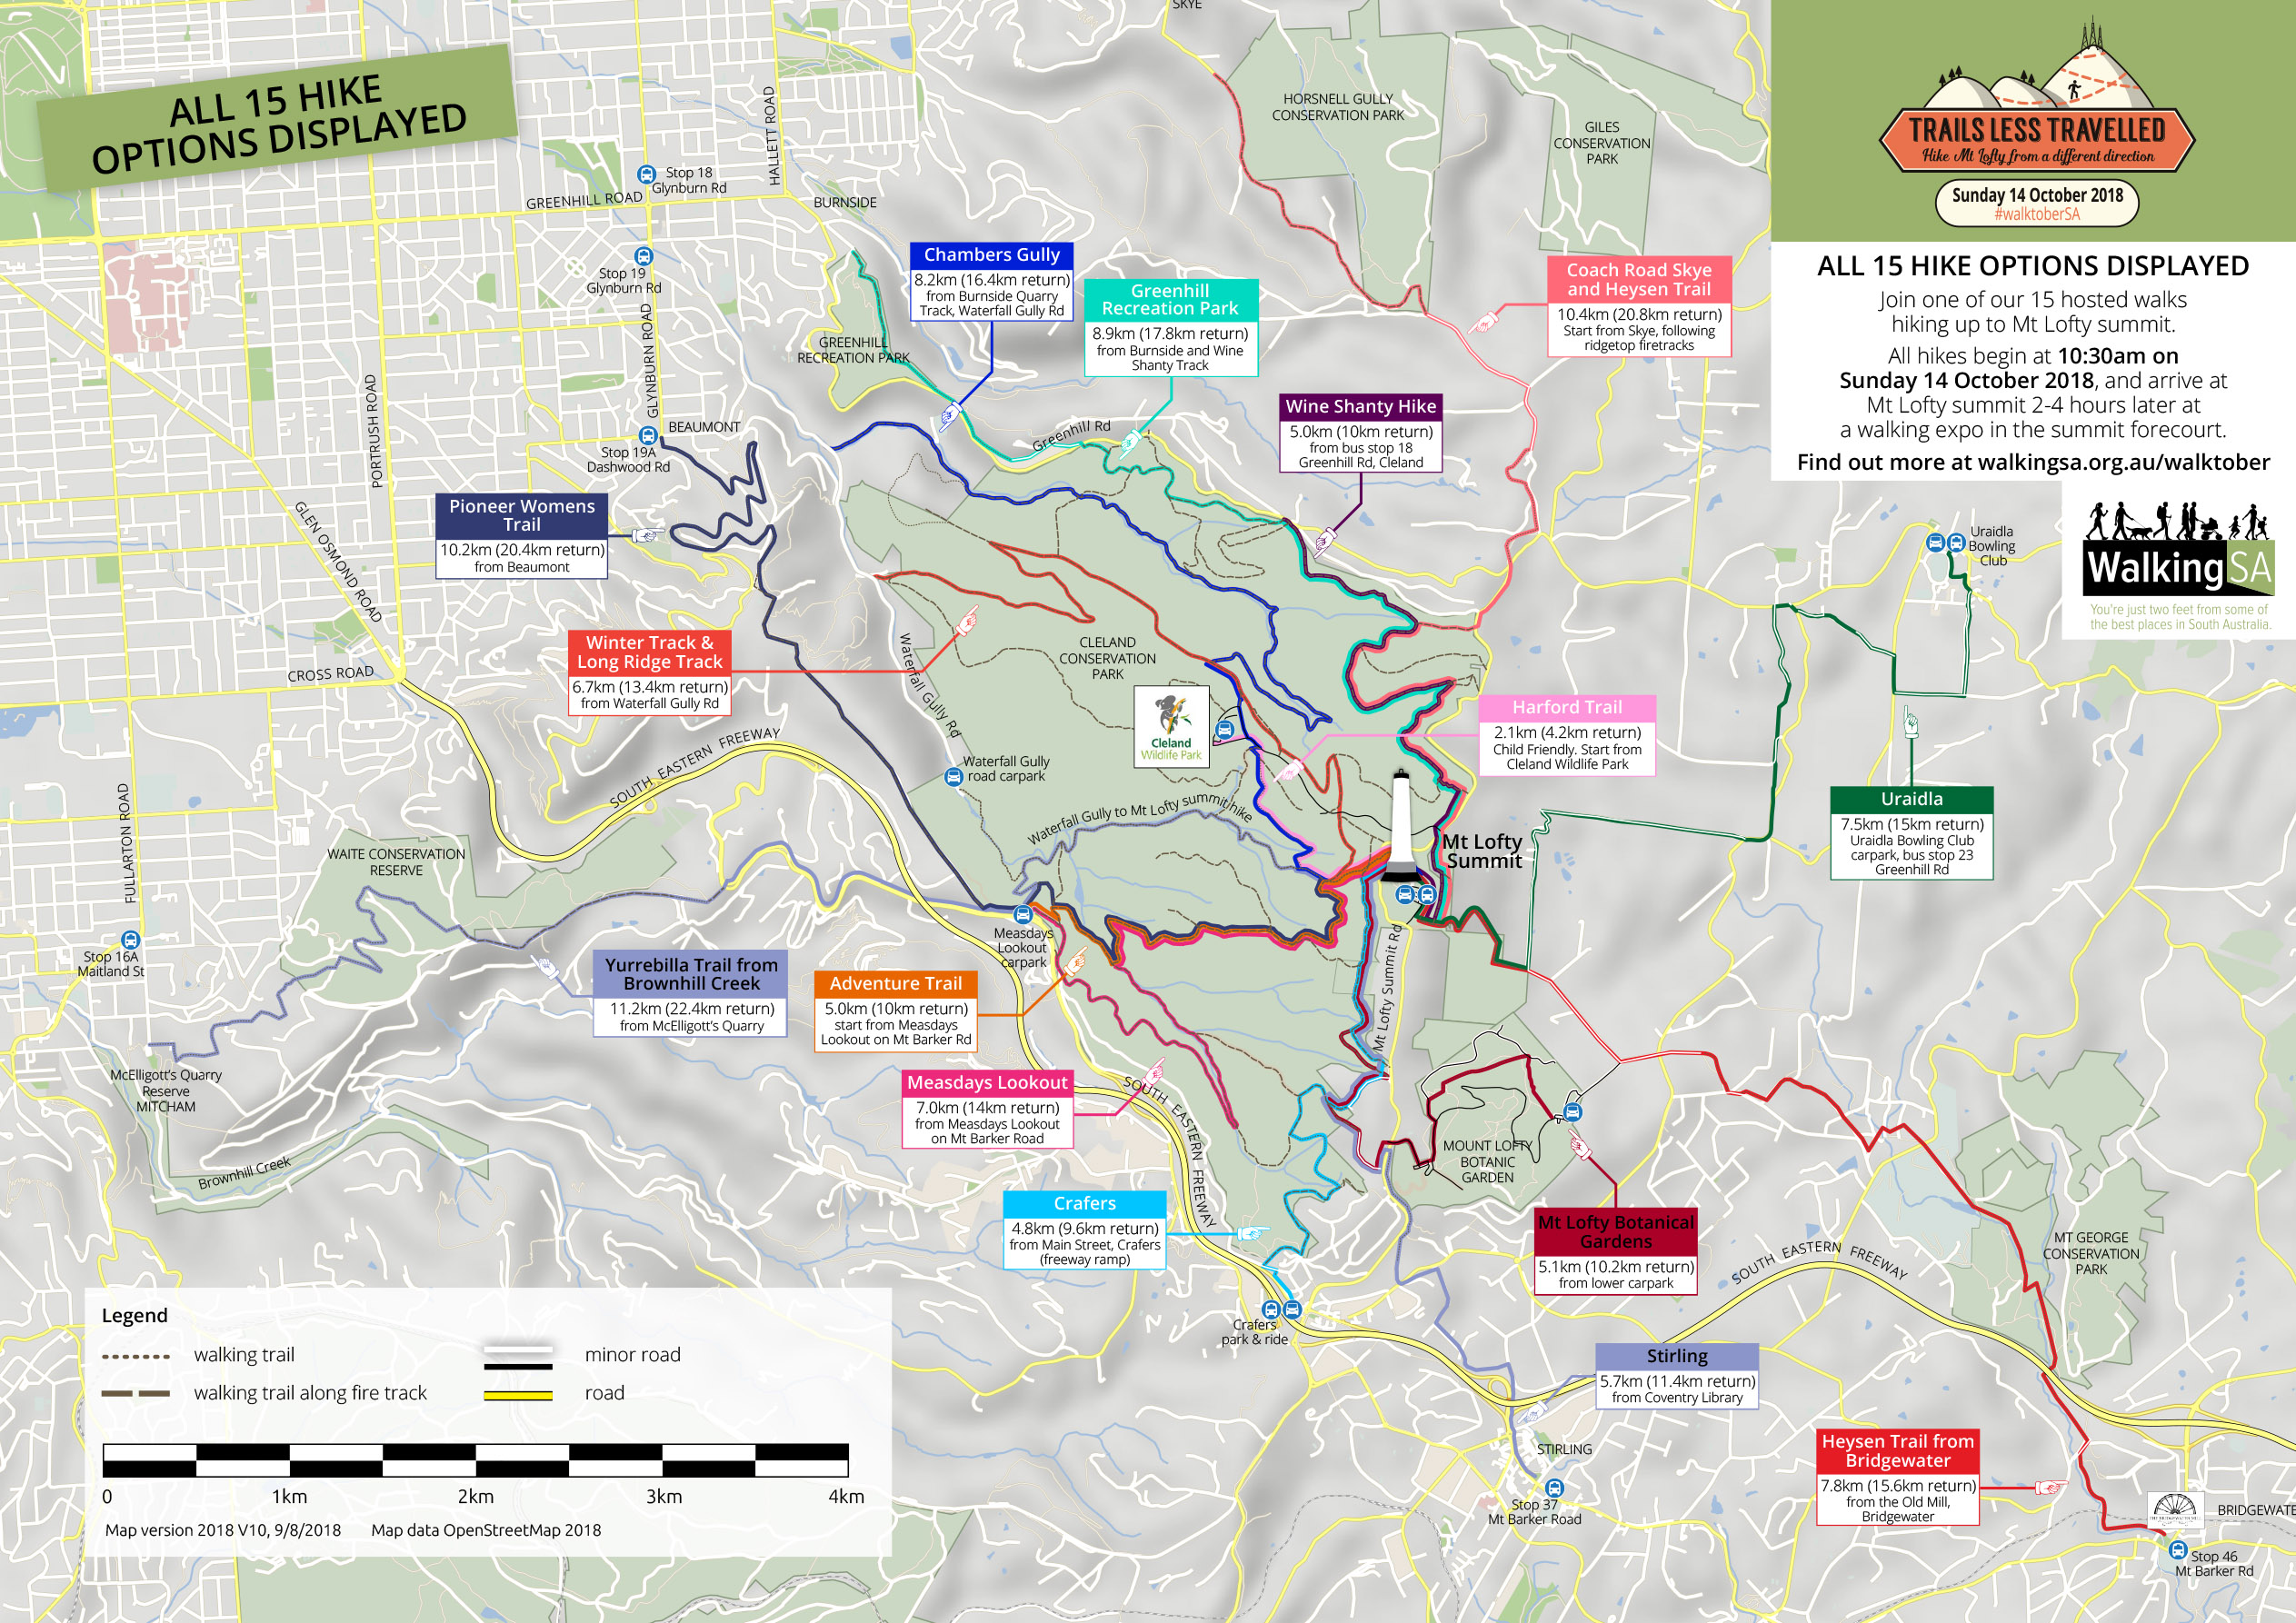 Map of all Trails Less Travelled Hike Options